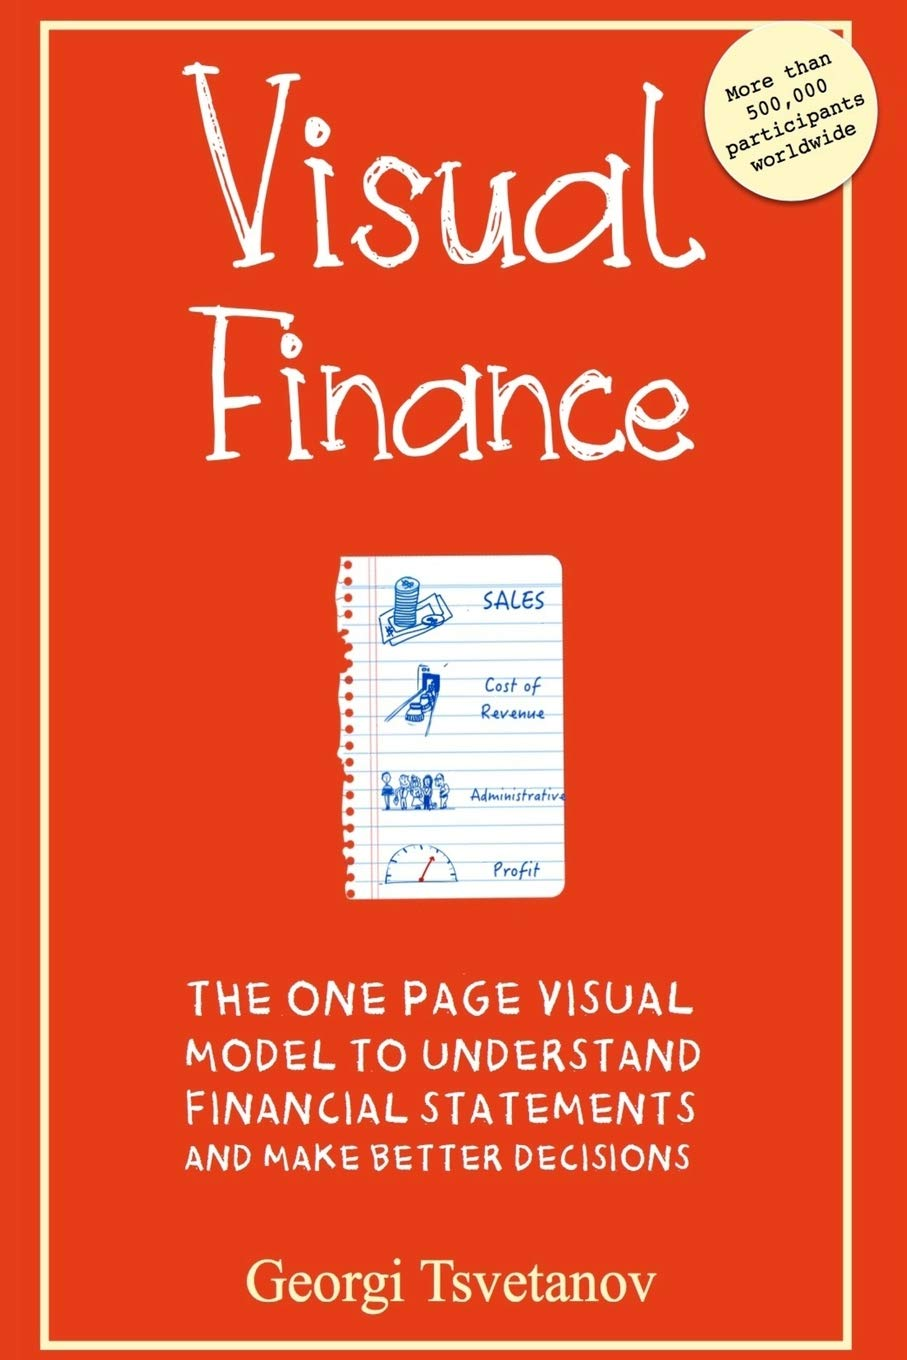 Download Visual Finance: The One Page Visual Model To Understand Financial Statements And Make Better Business Decisions 